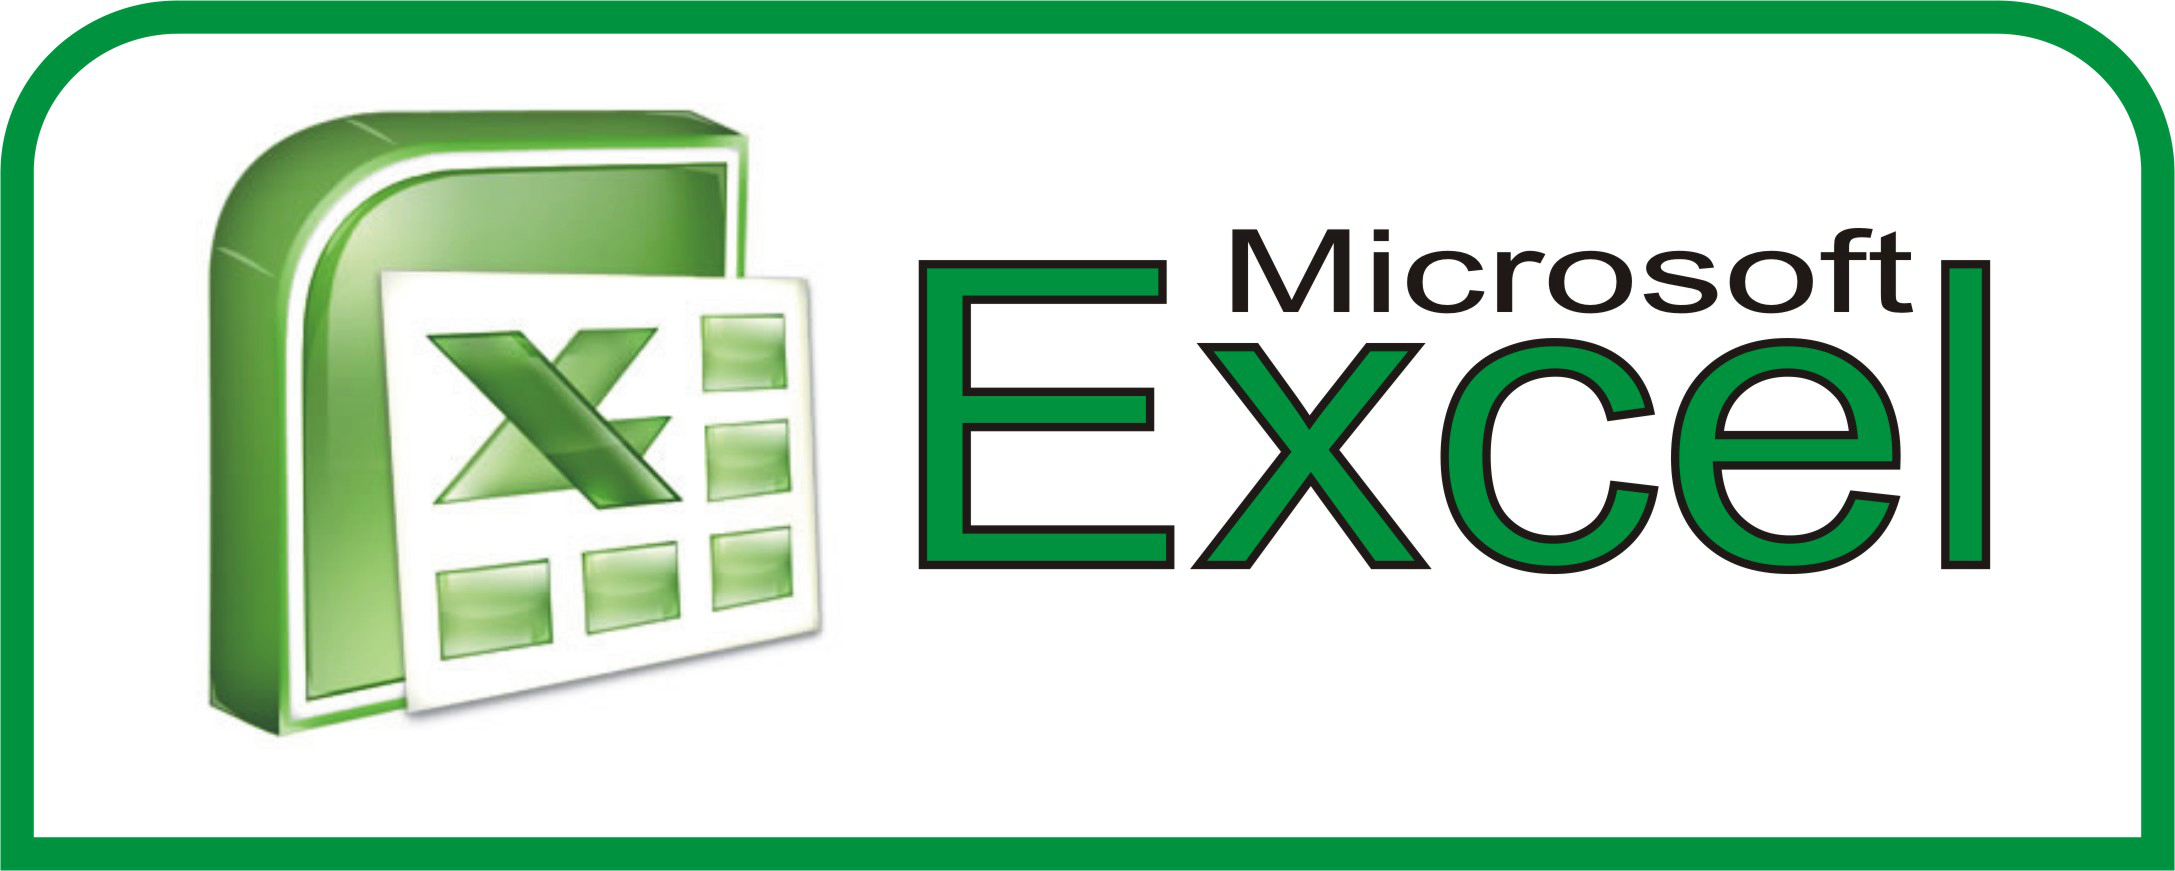 Ediblewildsus  Personable  Excel Shortcuts You Probably Didnt Know About  Techdissected With Remarkable Excel Vba Countif Besides How To Do Addition In Excel Furthermore Excel How To Create Drop Down List With Attractive How To Remove Blanks In Excel Also Free Pdf Converter To Excel In Addition D Scatter Plot Excel And Concatenate Excel  As Well As Insert Word Document Into Excel Additionally Export Excel To Csv From Techdissectedcom With Ediblewildsus  Remarkable  Excel Shortcuts You Probably Didnt Know About  Techdissected With Attractive Excel Vba Countif Besides How To Do Addition In Excel Furthermore Excel How To Create Drop Down List And Personable How To Remove Blanks In Excel Also Free Pdf Converter To Excel In Addition D Scatter Plot Excel From Techdissectedcom